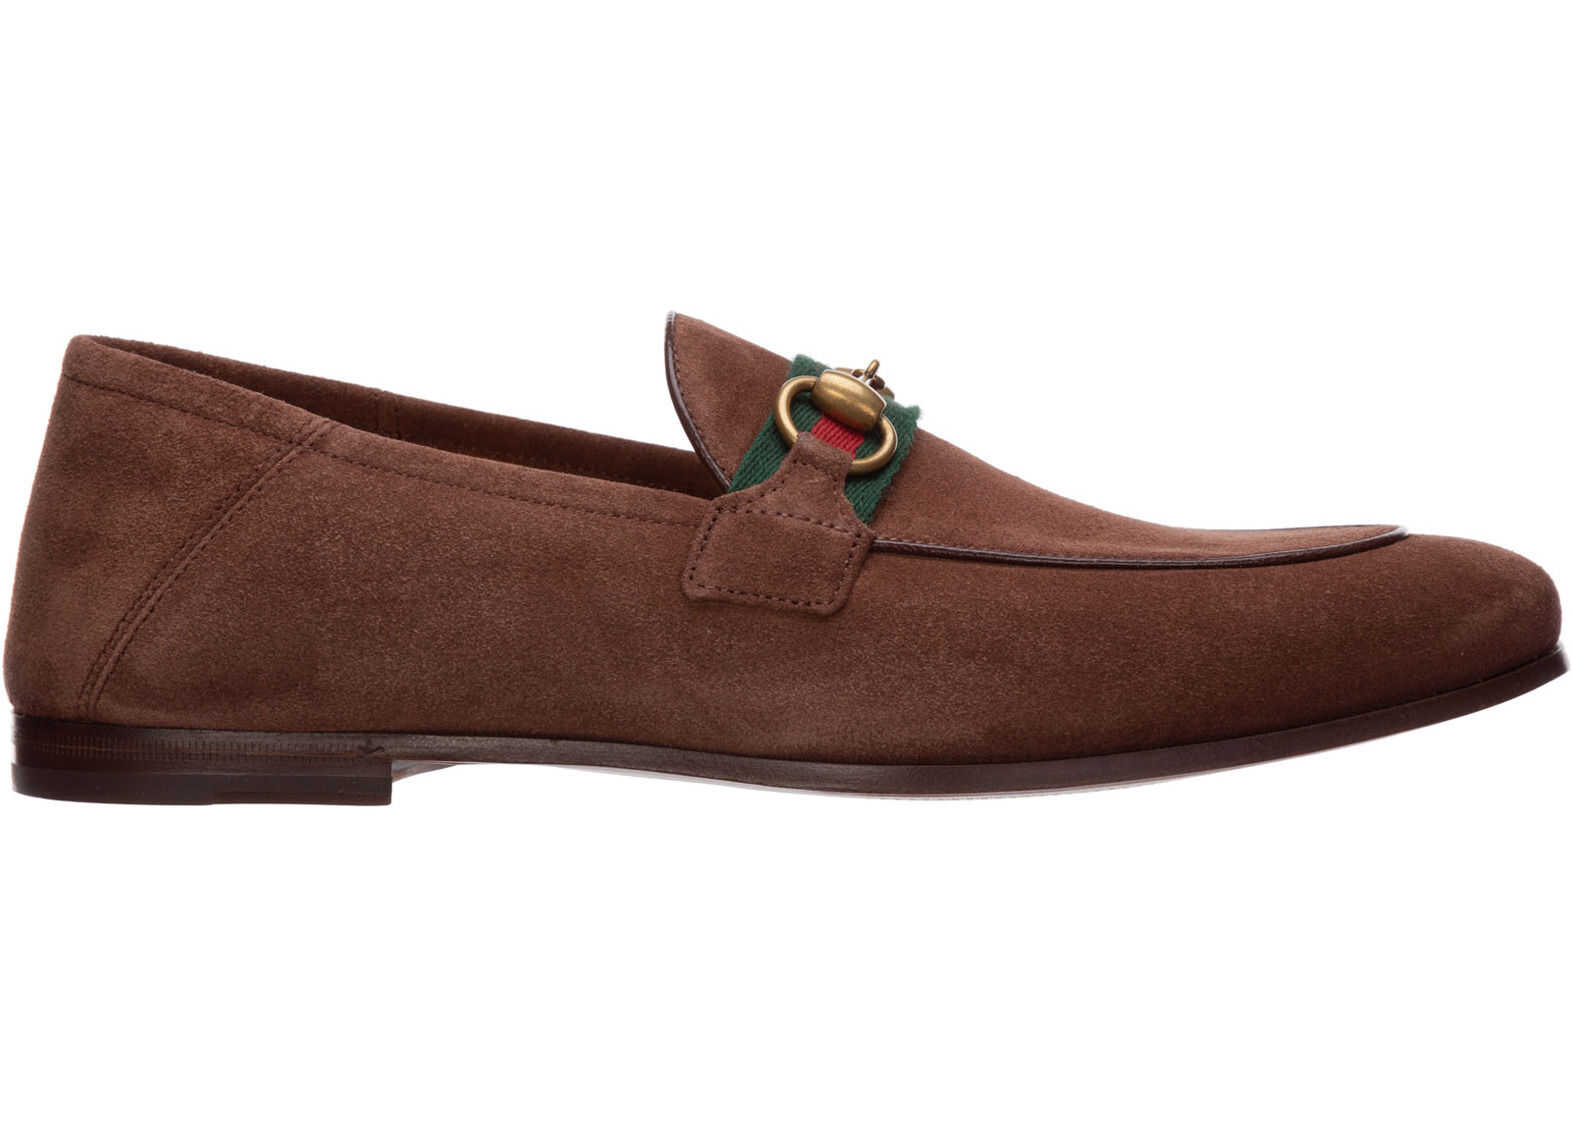 Gucci Loafers Moccasins Brown